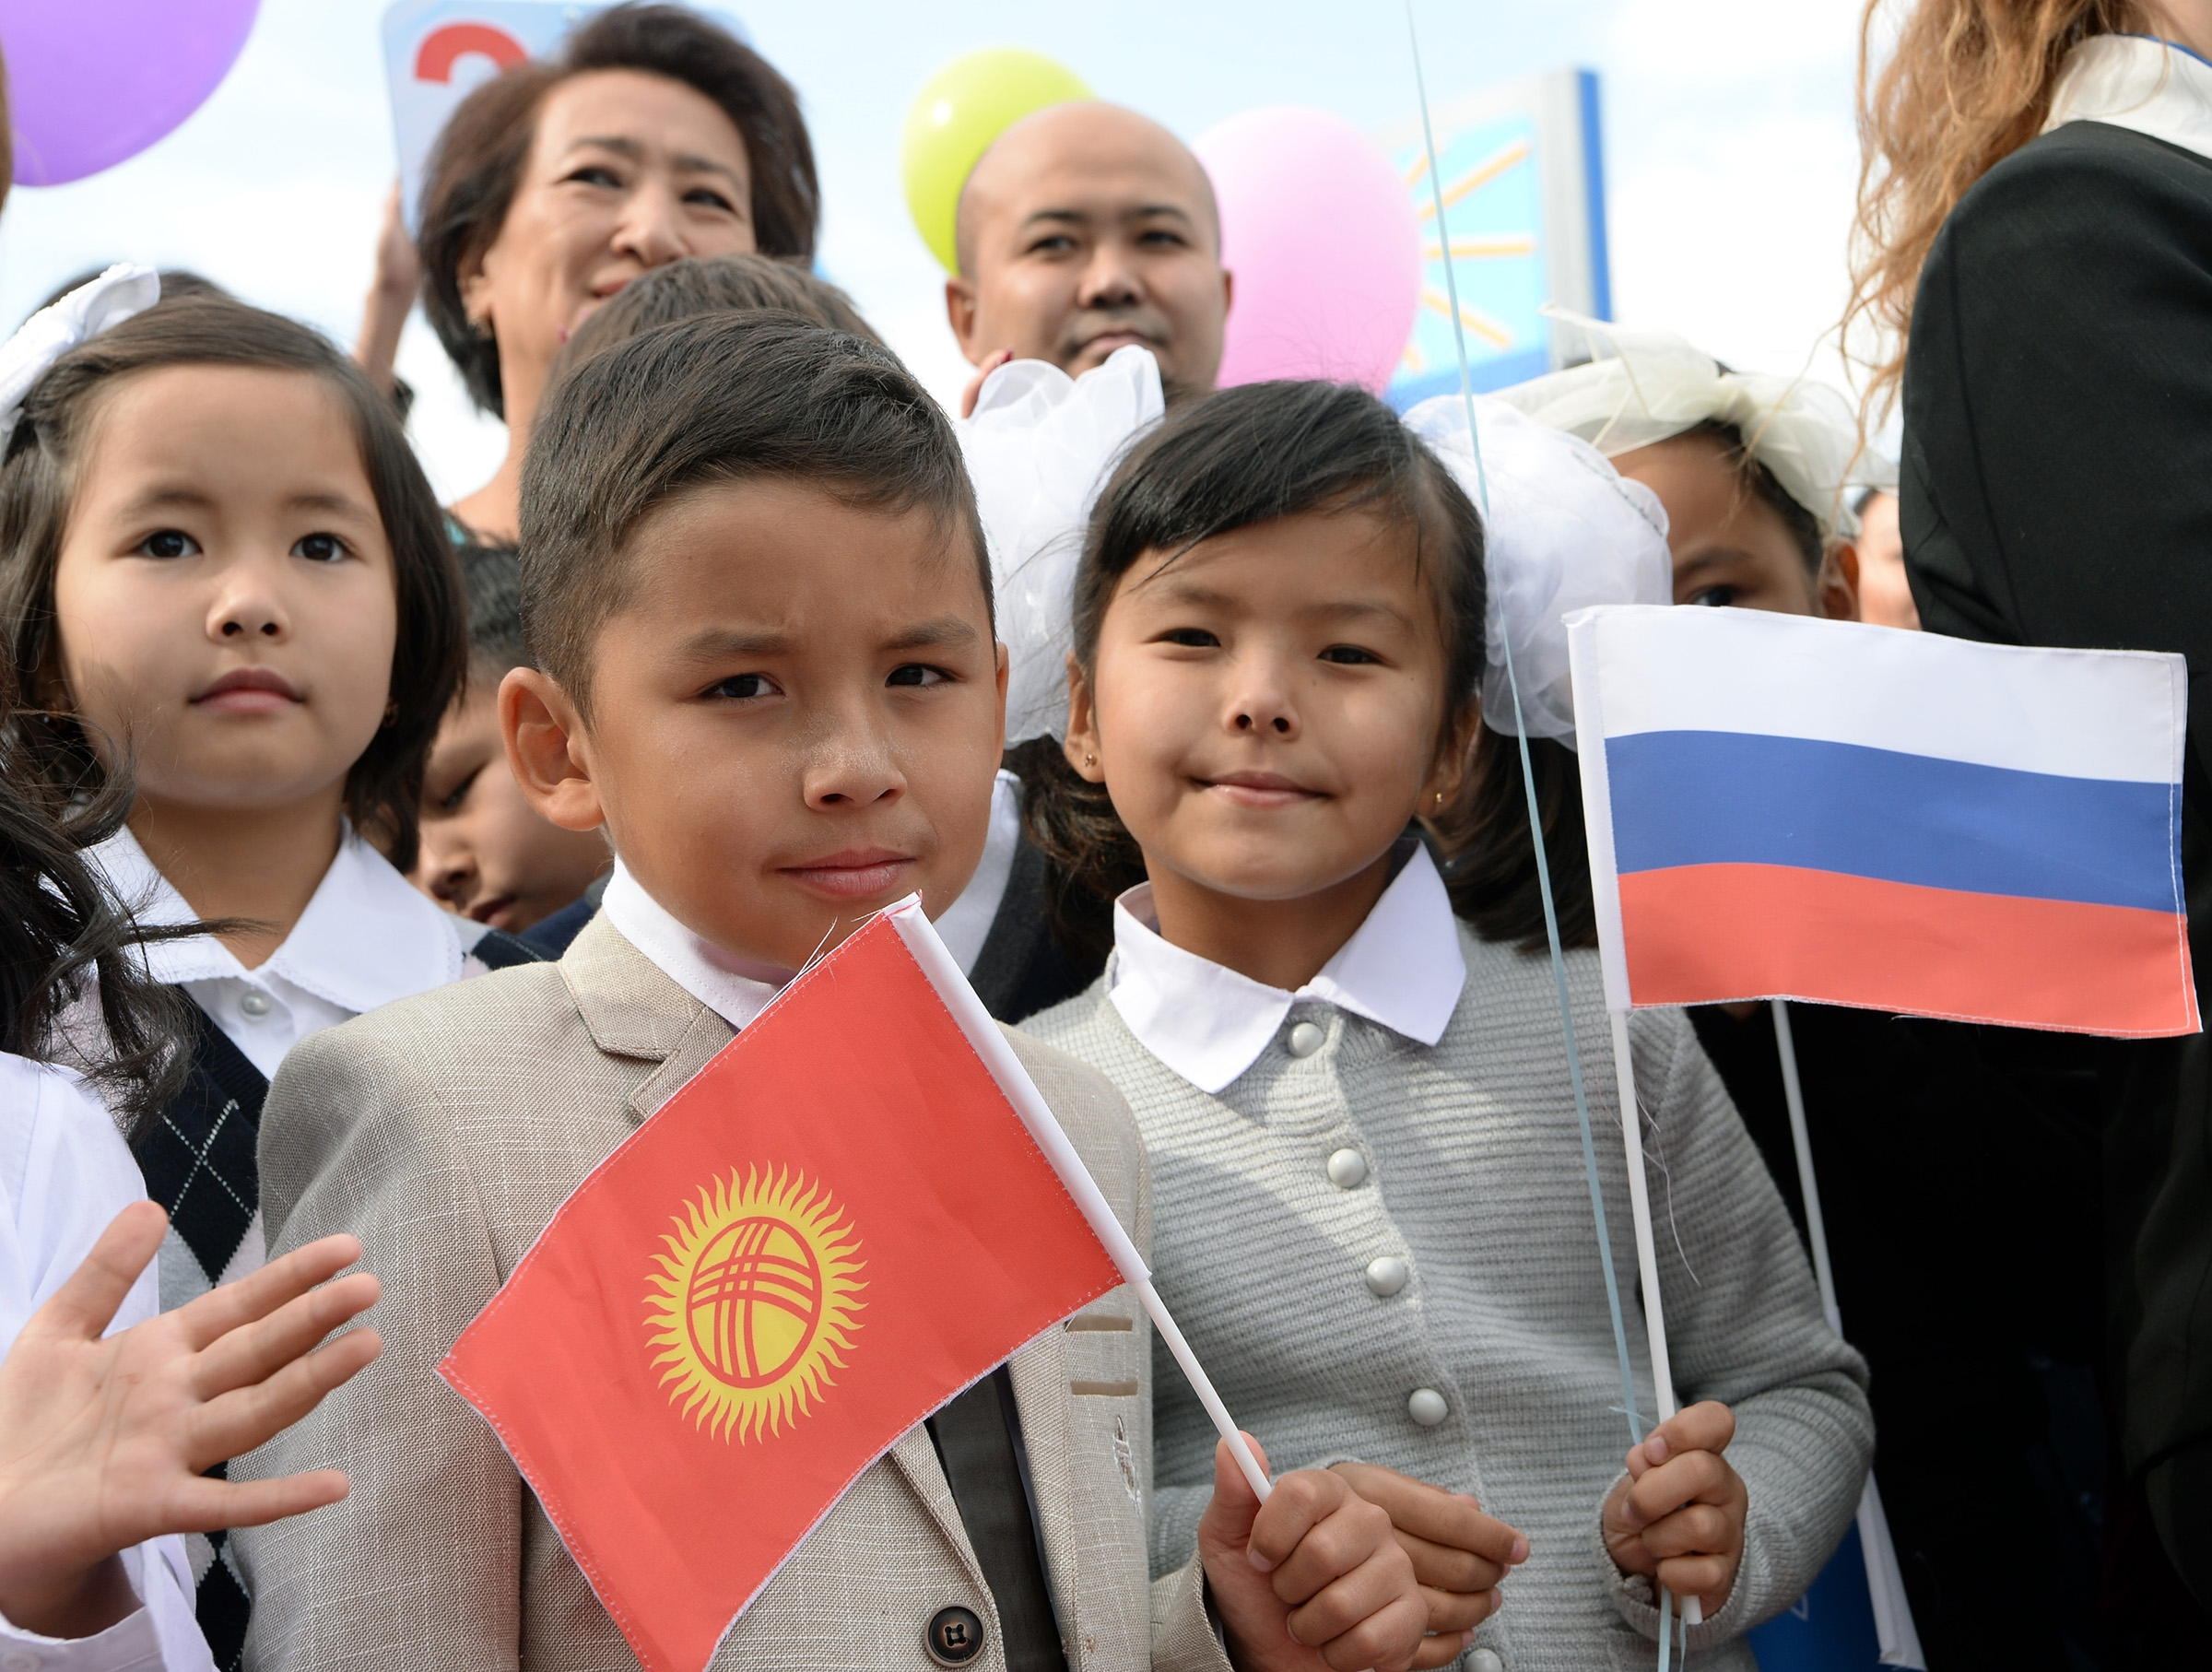 Children at the opening of Gazprom's school in Bishkek. (Photos: Kyrgyz presidential administration)